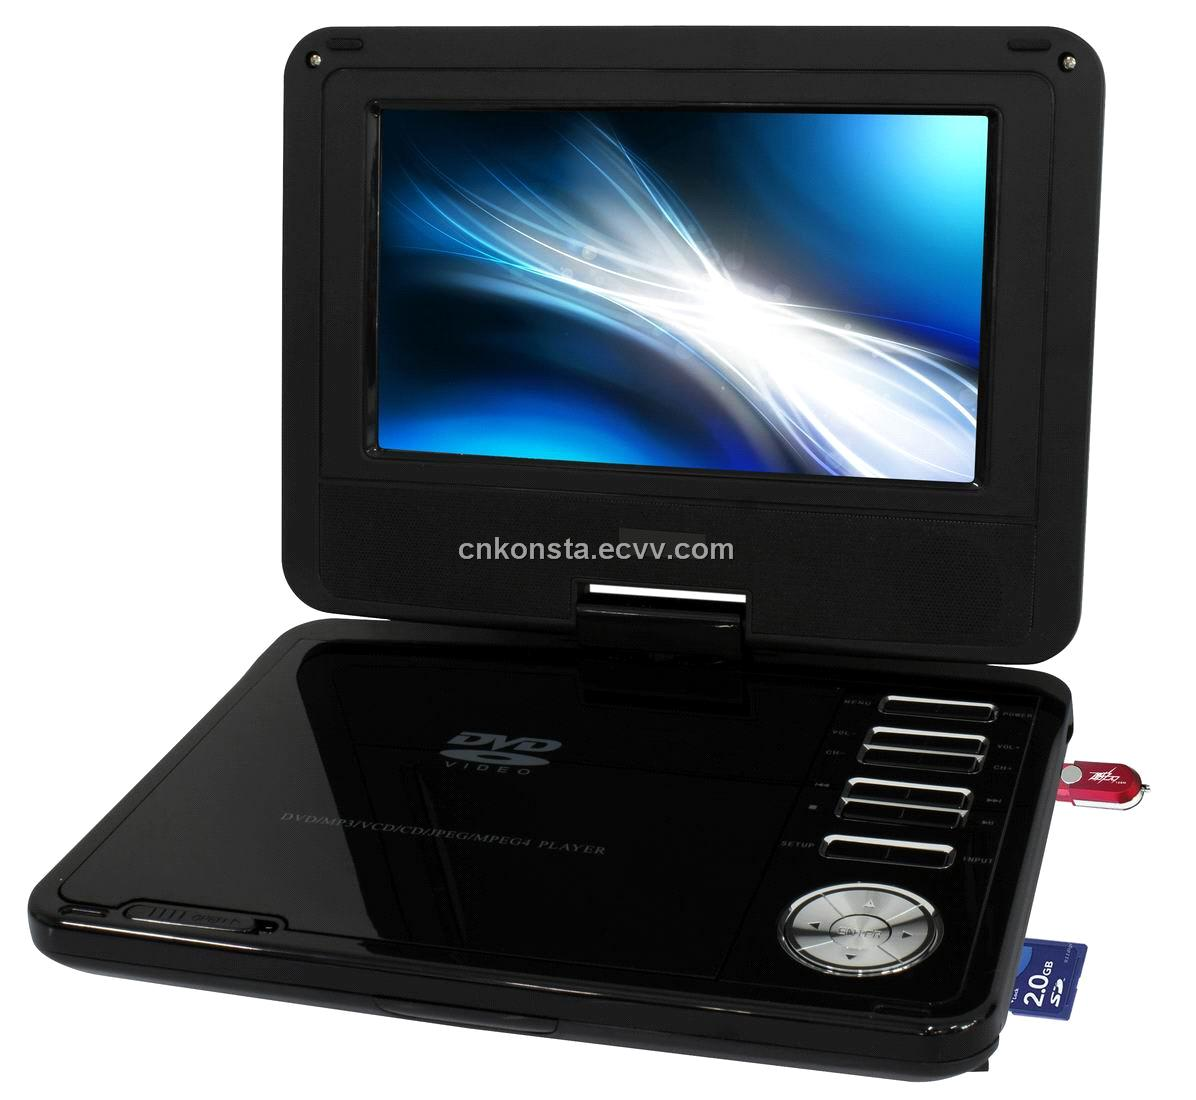 3d function 7 39 39 portable dvd player cheap price good quolity tv dvd usb sd gmae cd divx card. Black Bedroom Furniture Sets. Home Design Ideas